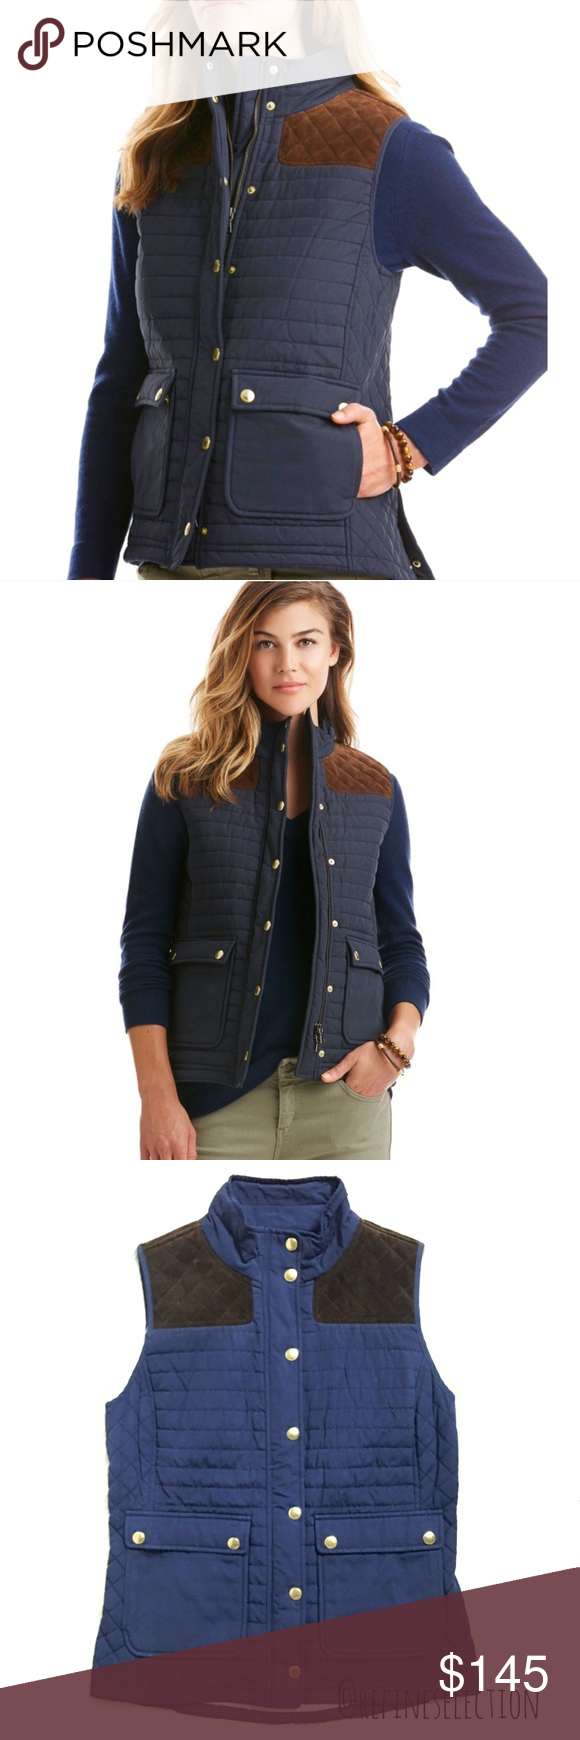 Vineyard Vines Quilted Leather Navy Hunting Vest Brand New